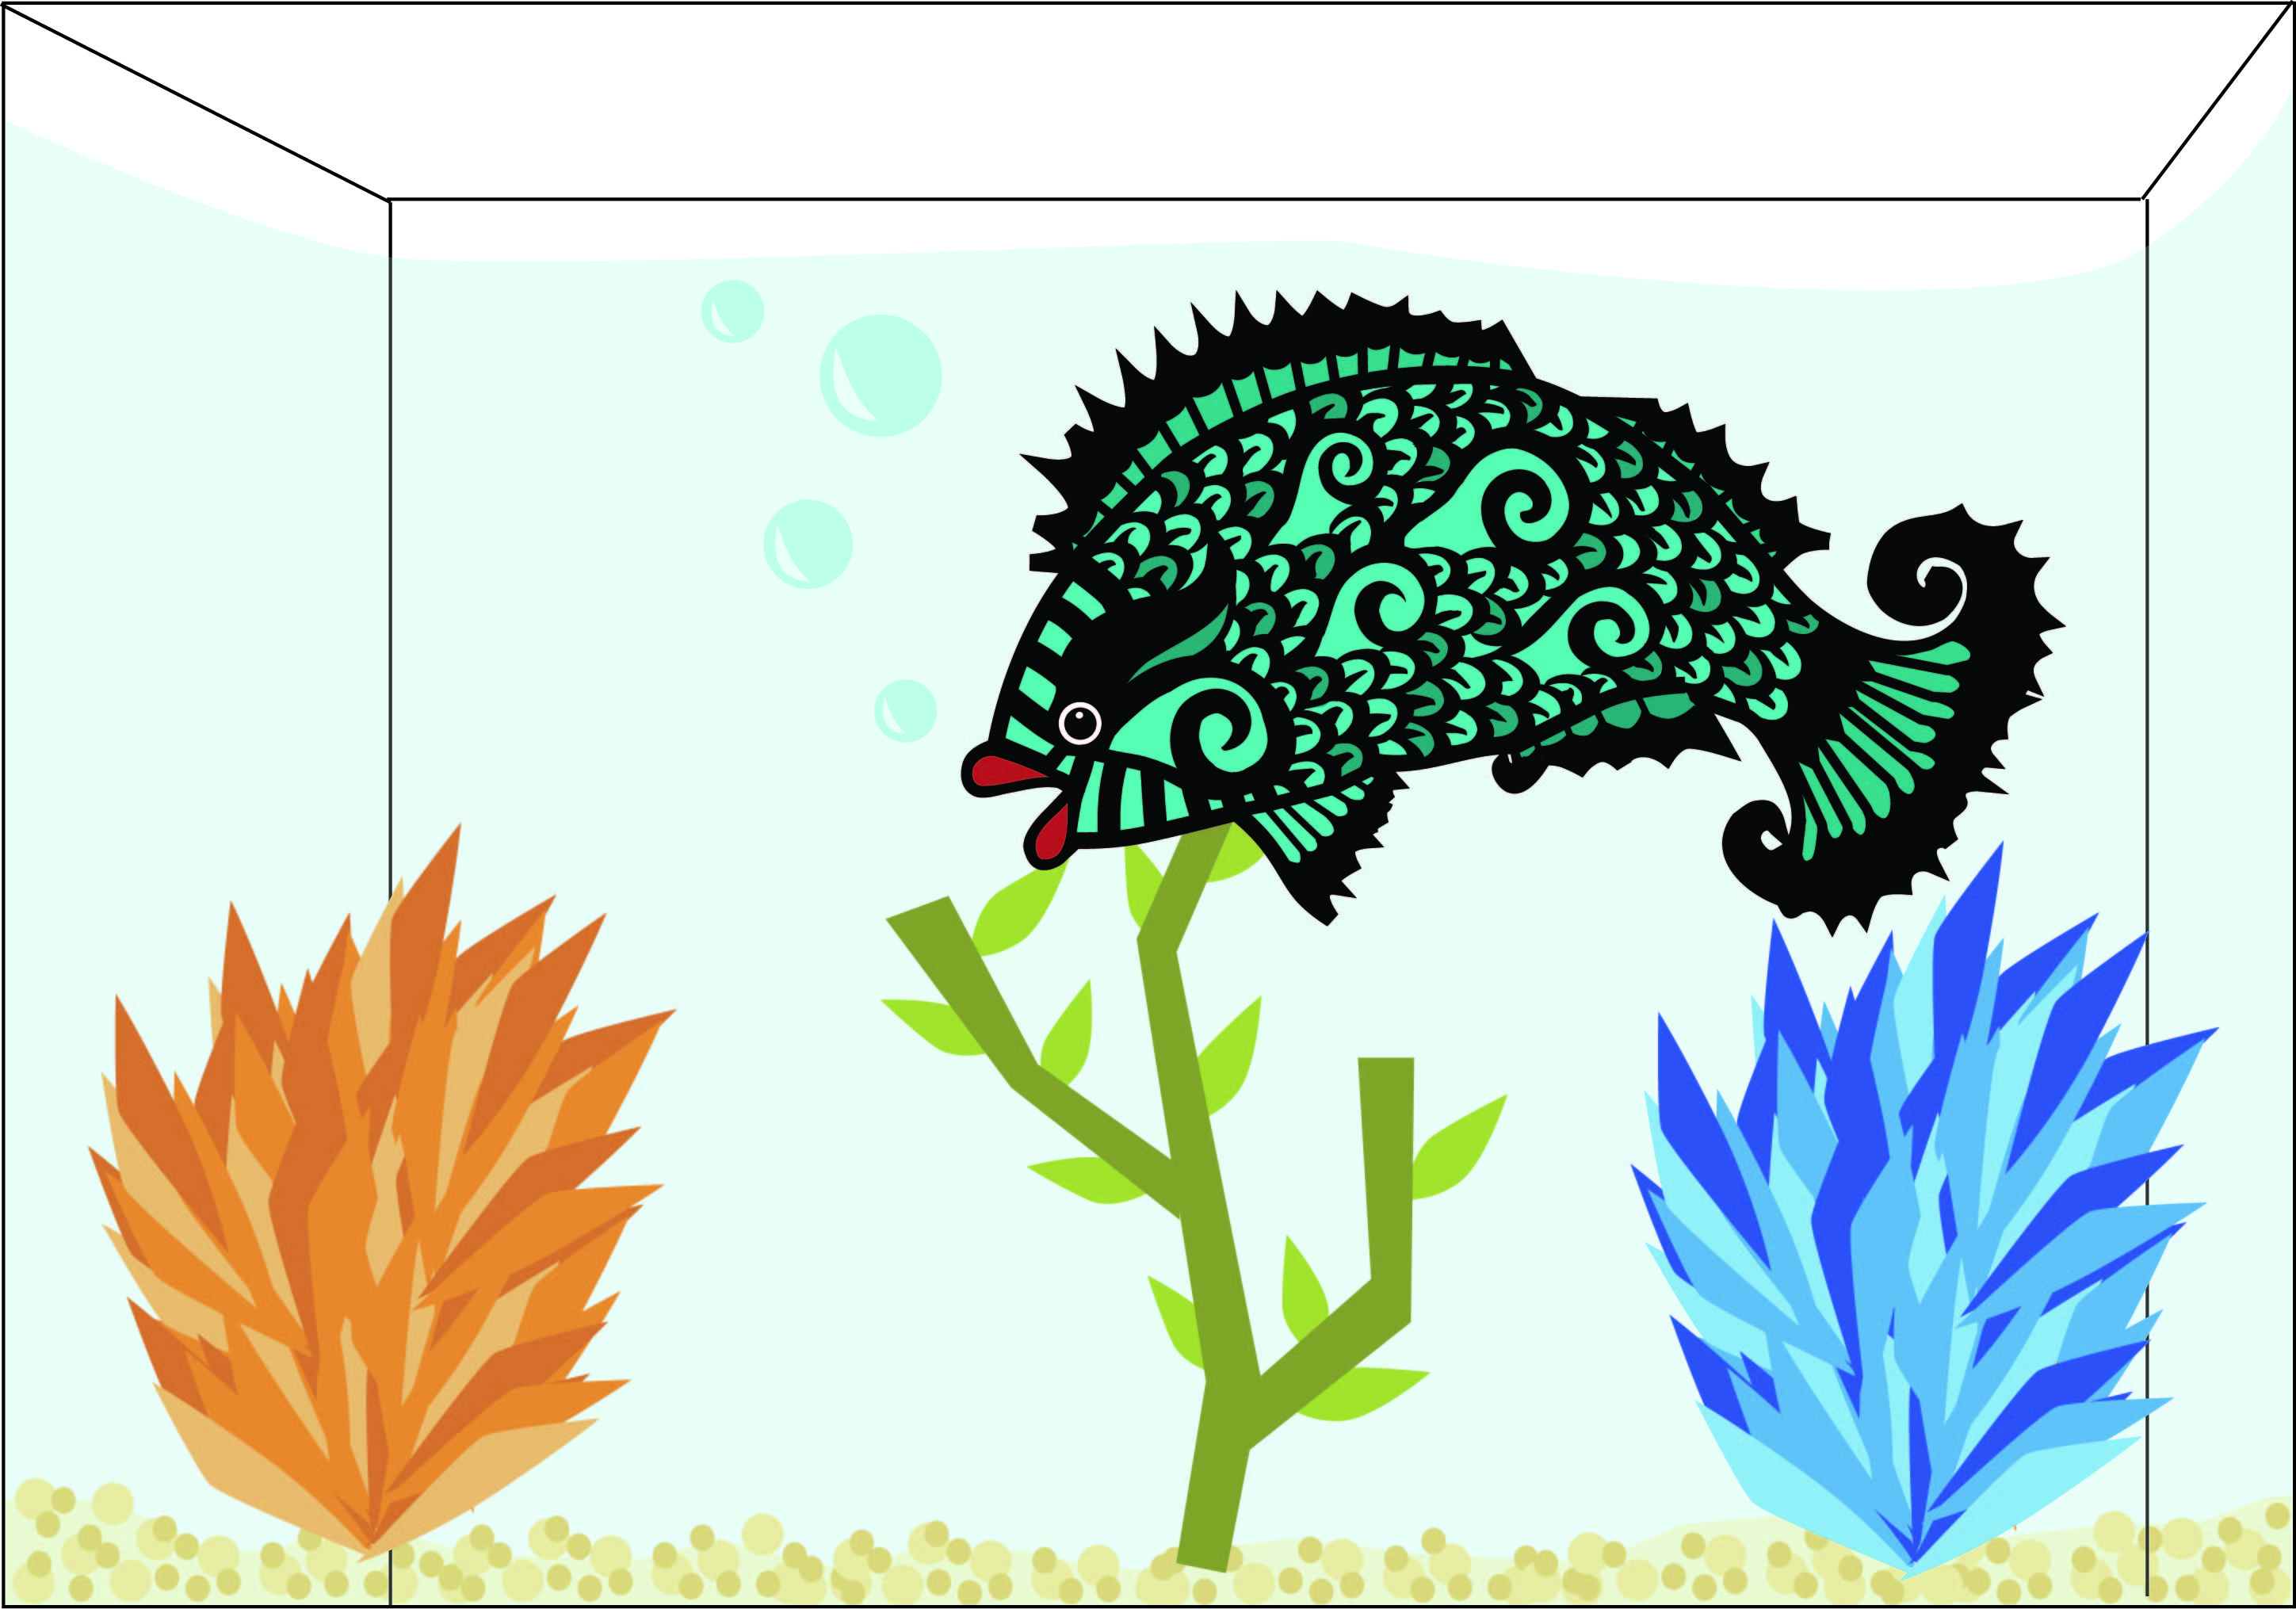 term project essay the fish tank project digital art history digital art is not just art but also involves the social aspects of human interaction and emotions the fish tank project conceptualizes emotional